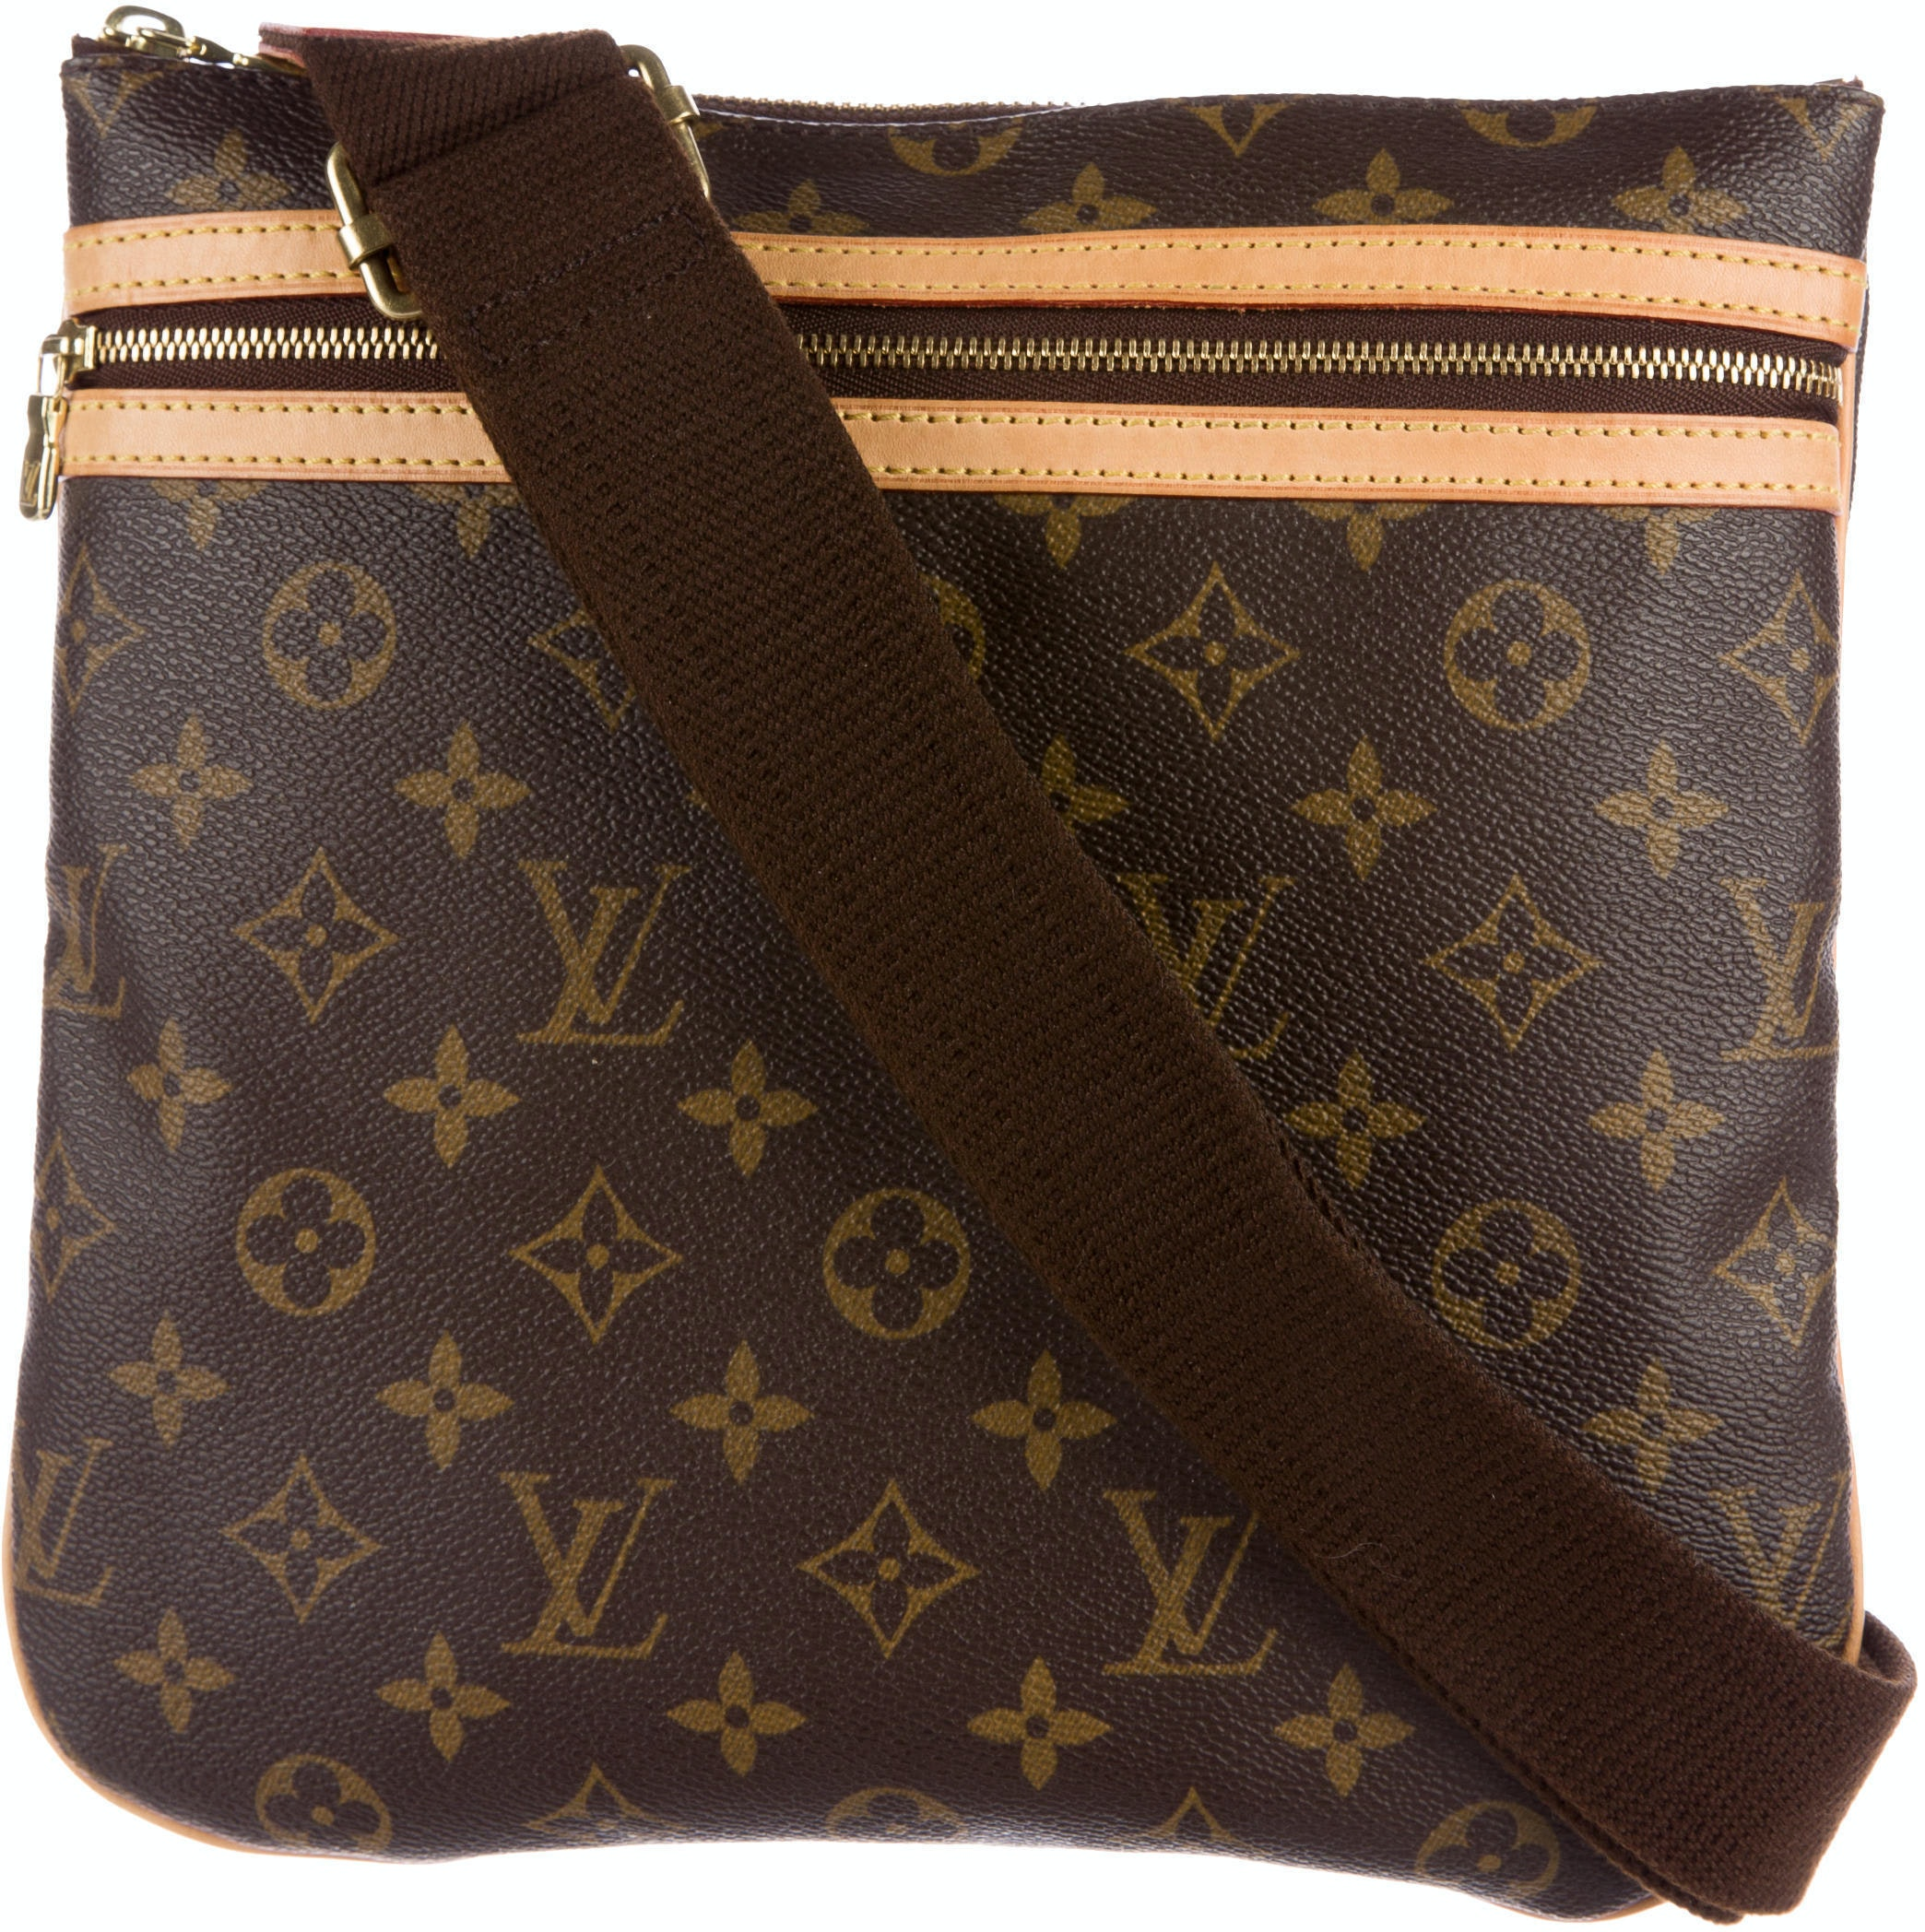 Louis Vuitton Pochette Bosphore Monogram Brown